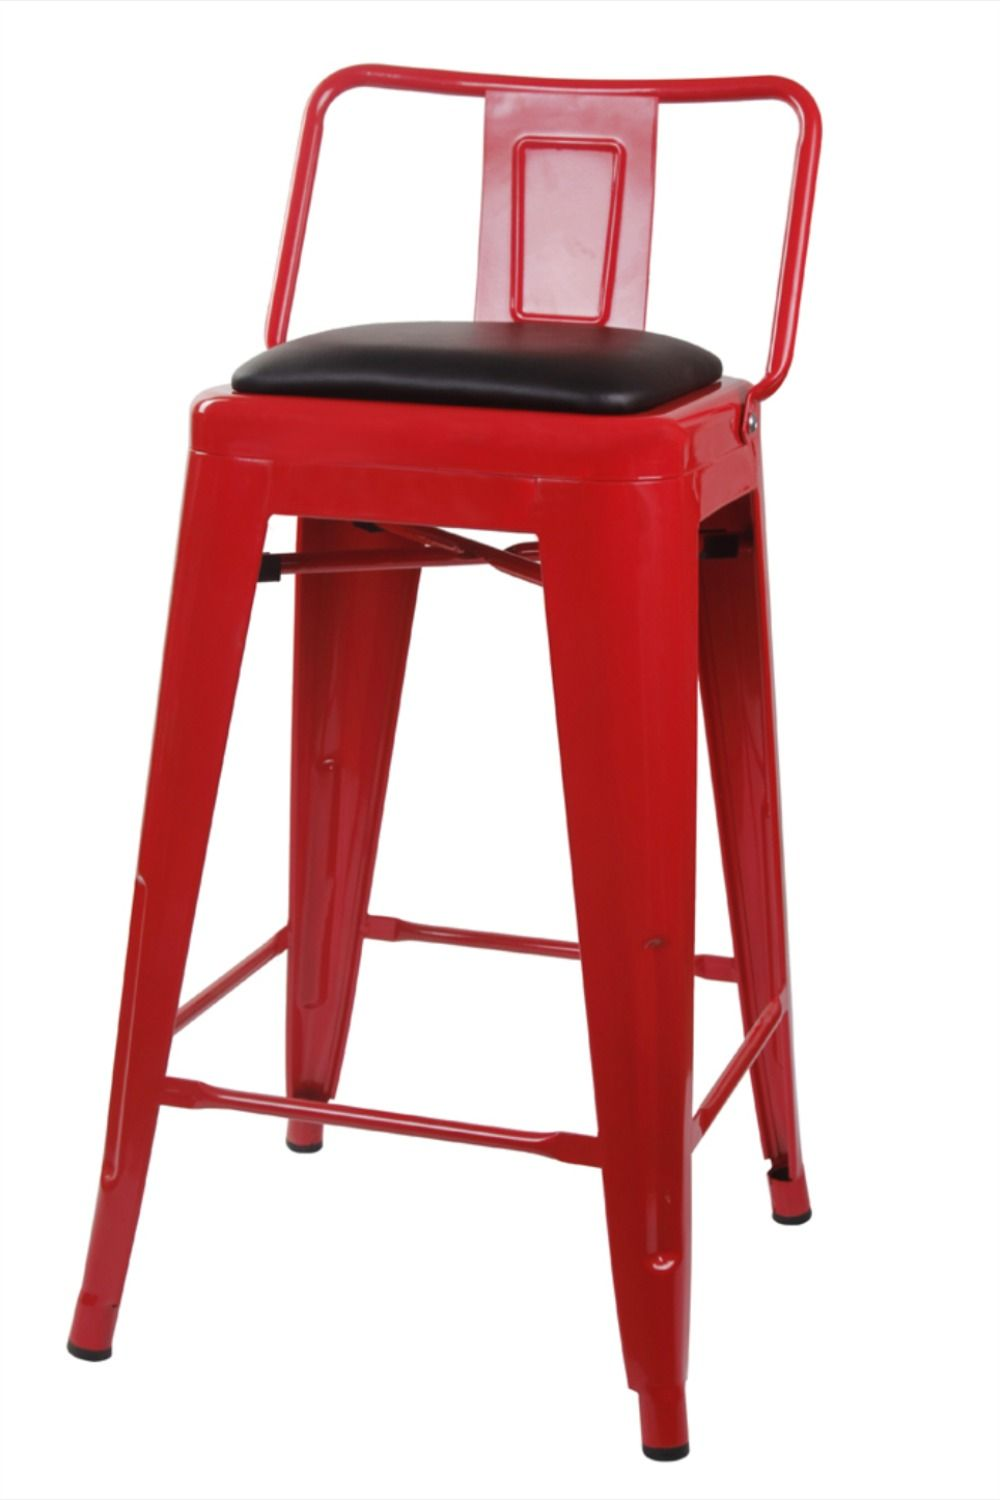 Out Of Stock Now In 2020 Metal Bar Stools Industrial Style Bar Stools